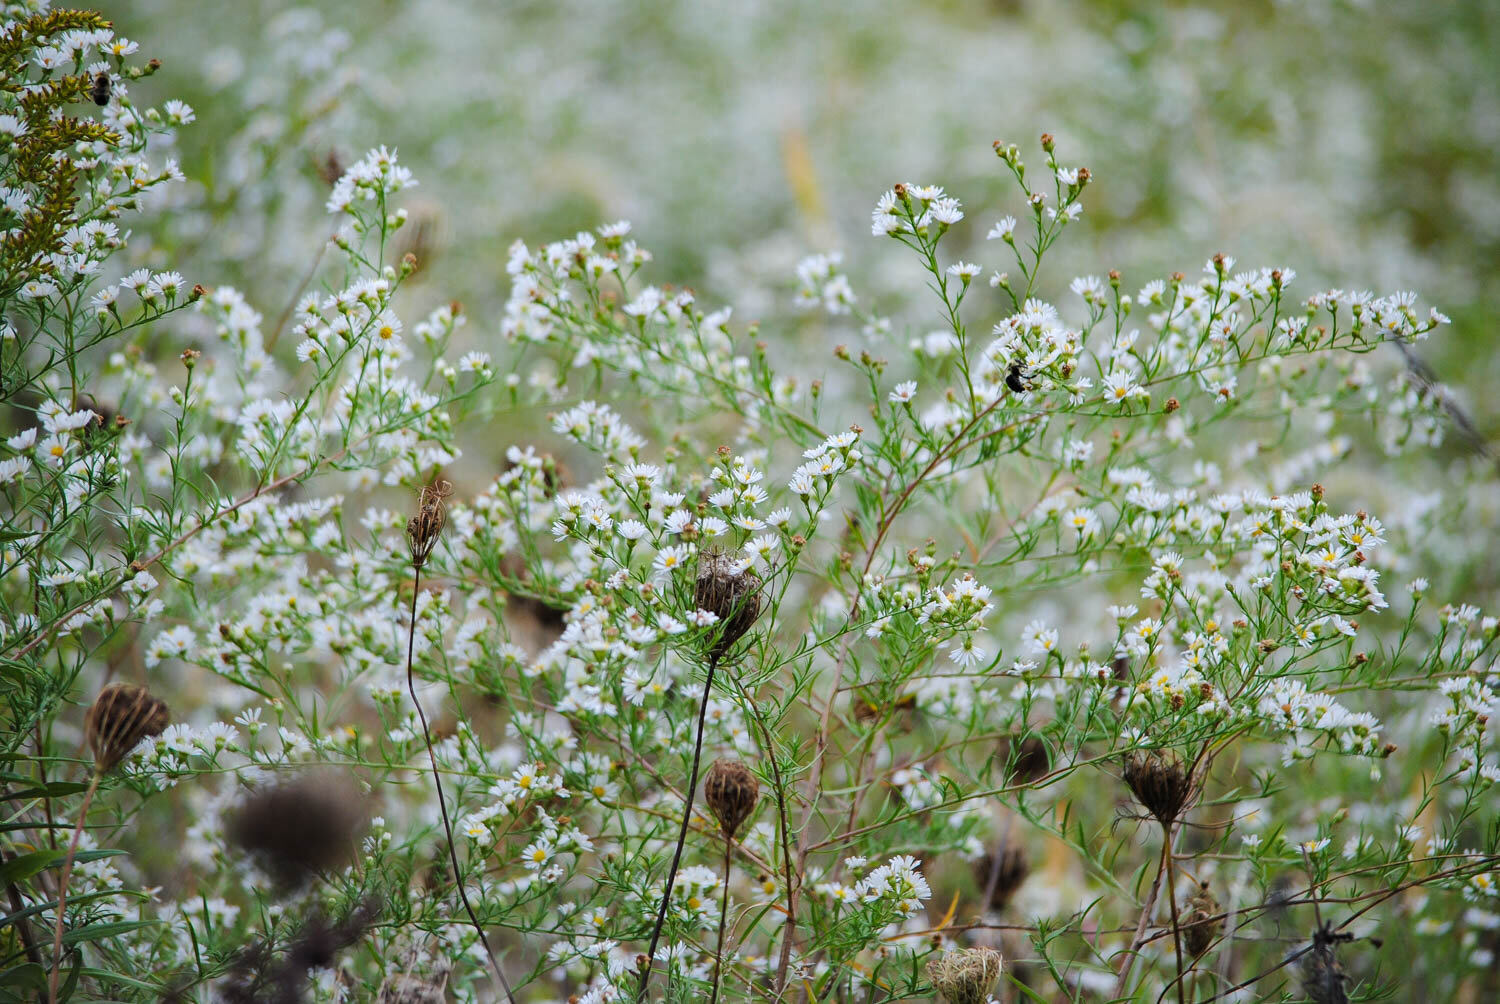 I believe this to be  Symphyotrichum pilosum  with some  Daucus  seedheads mixed in for good measure .  Notice the bees on a few flowers.